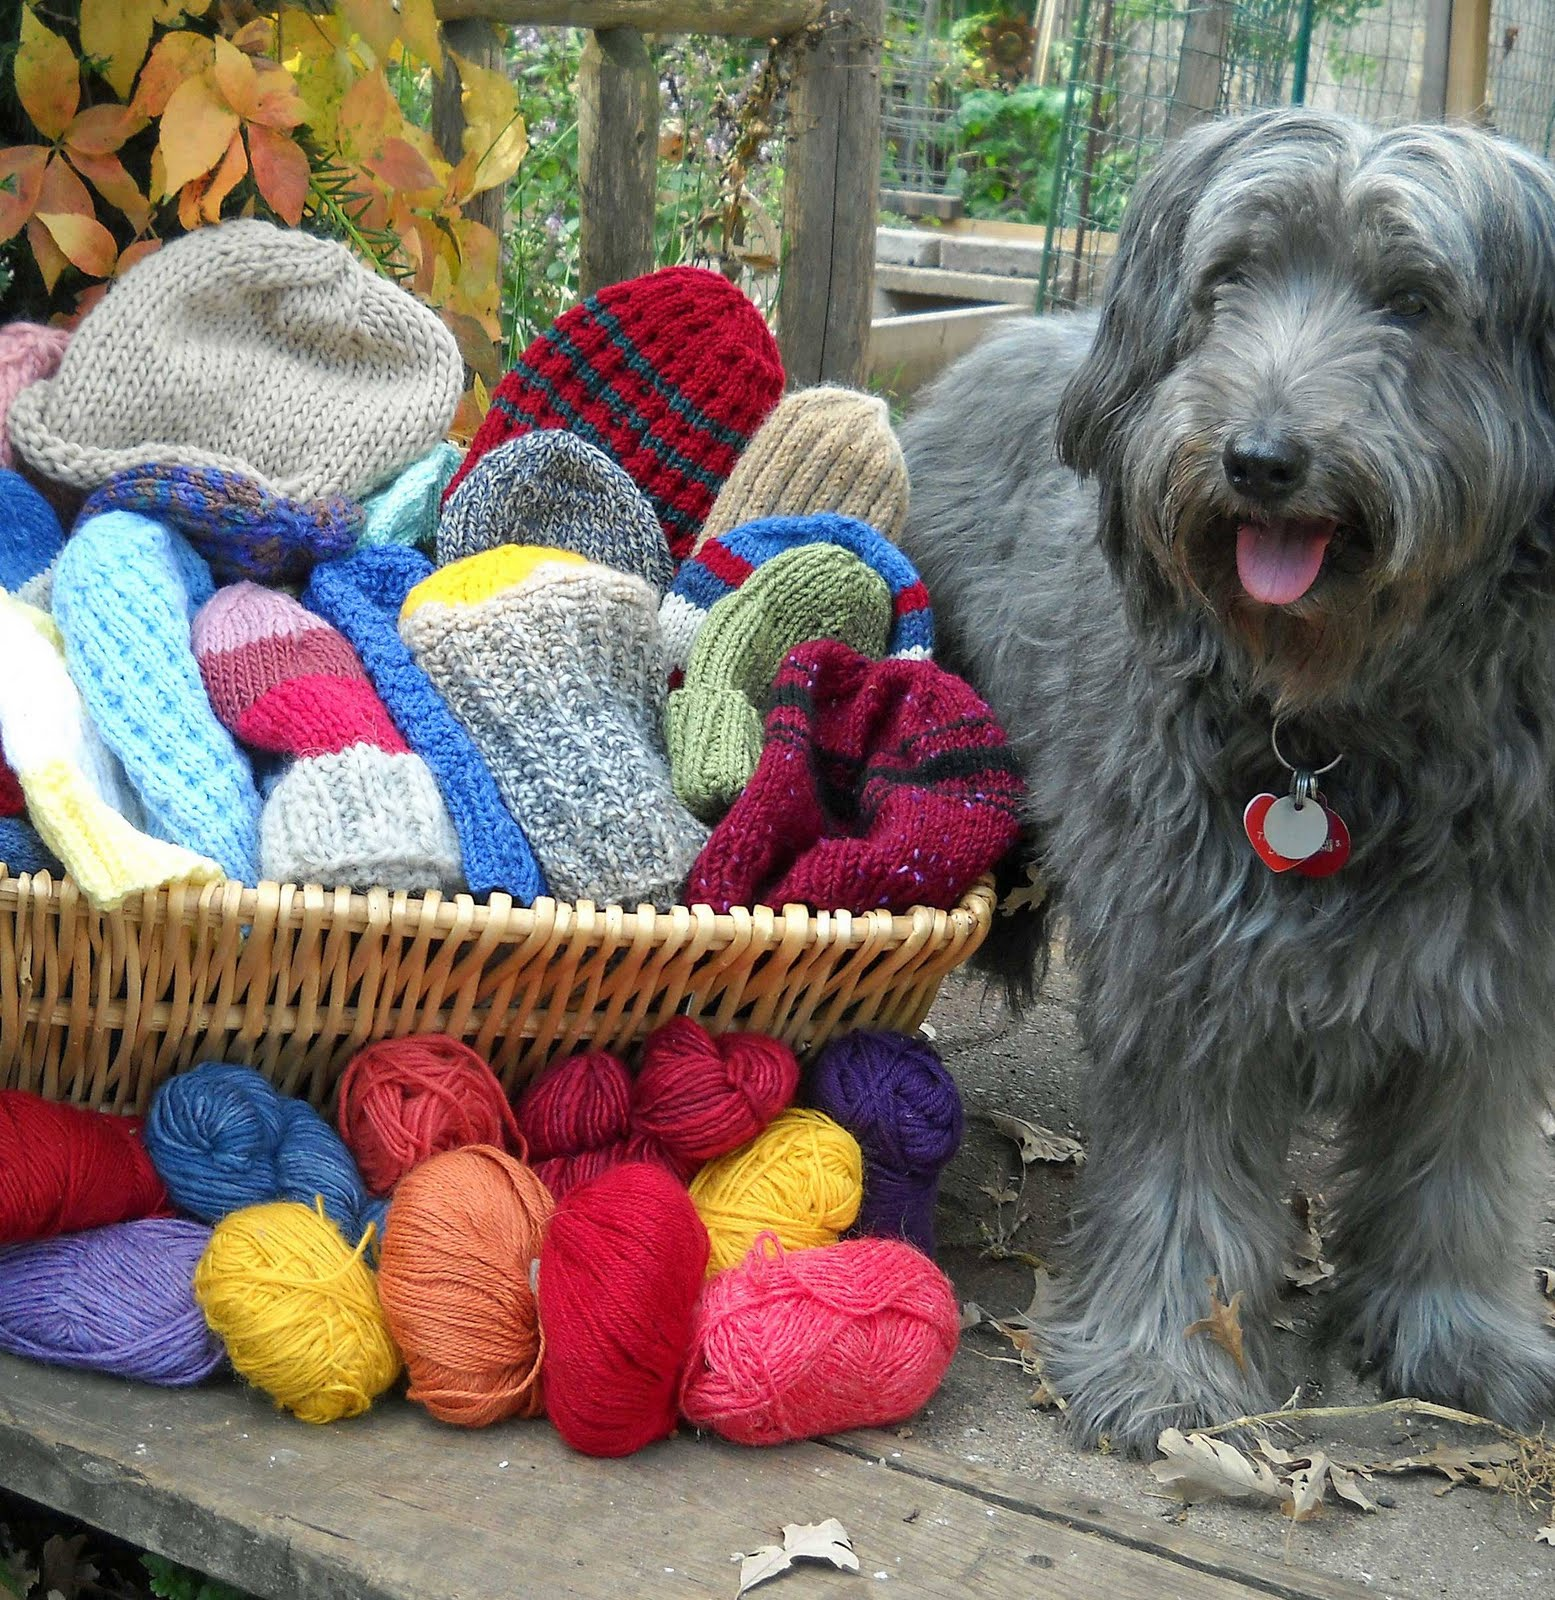 Knitting Scarves For The Homeless : Hats for the homeless knitting giving loving